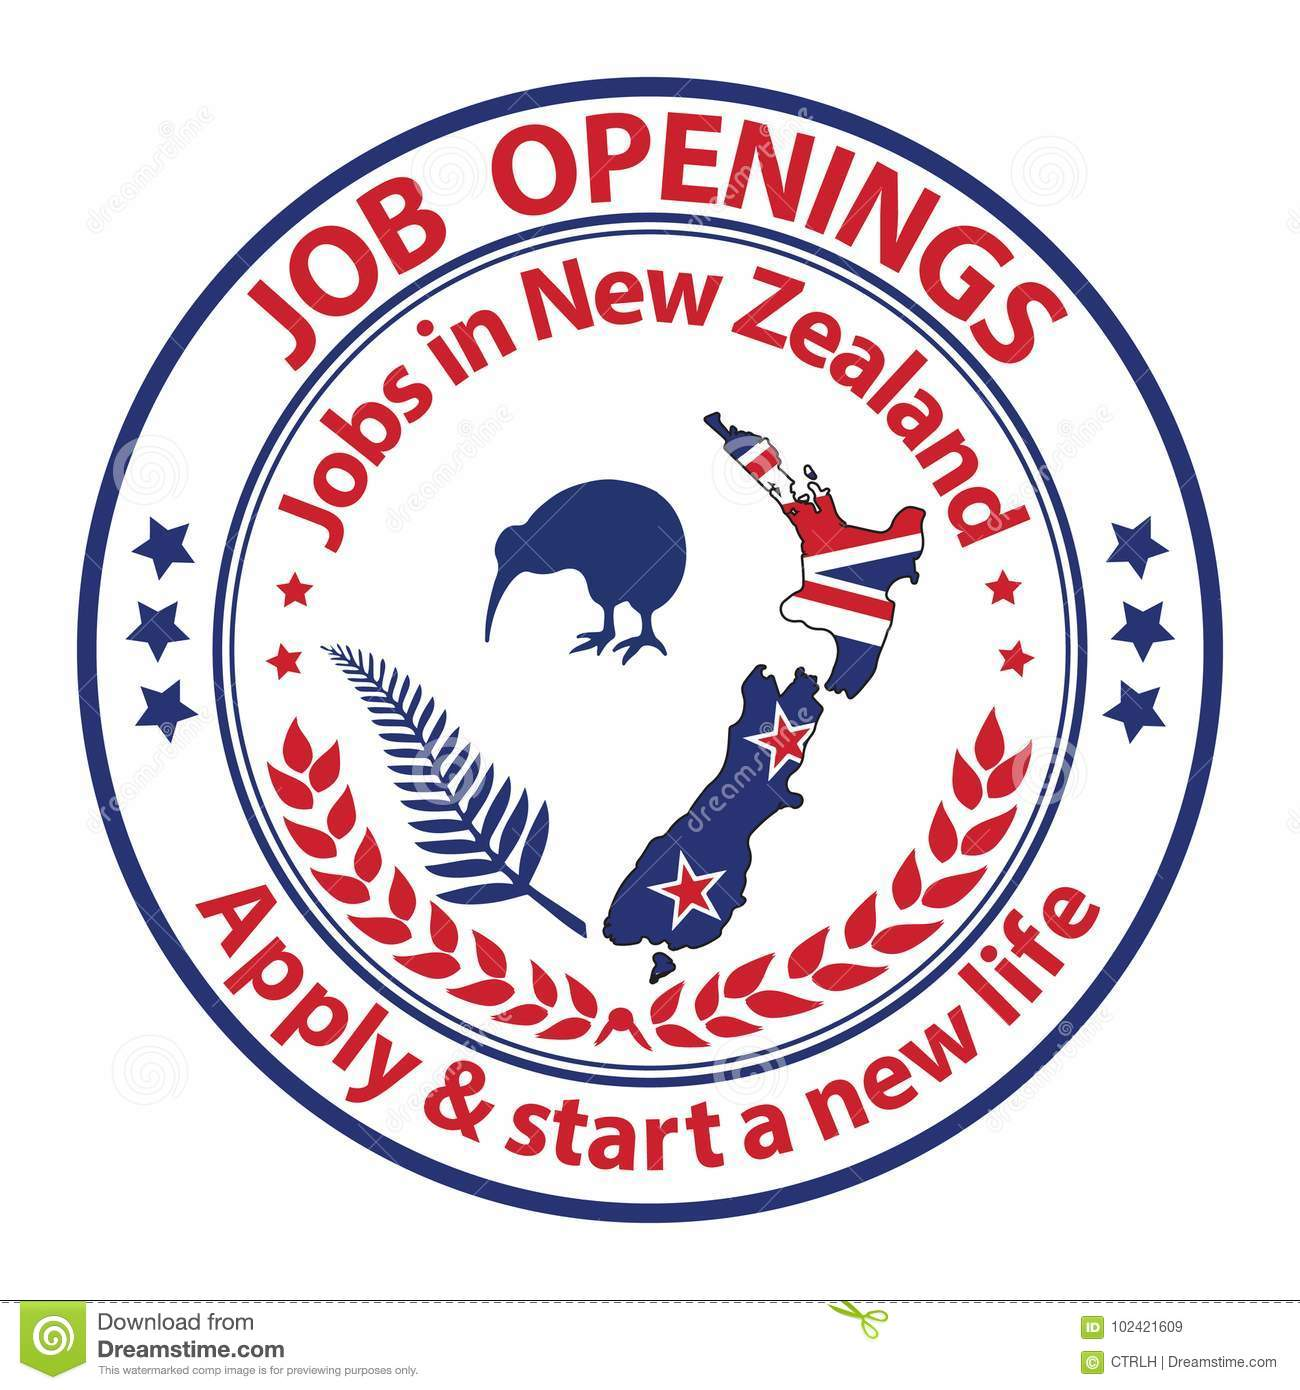 Job Openings In New Zealand - Recruitment Stamp Stock